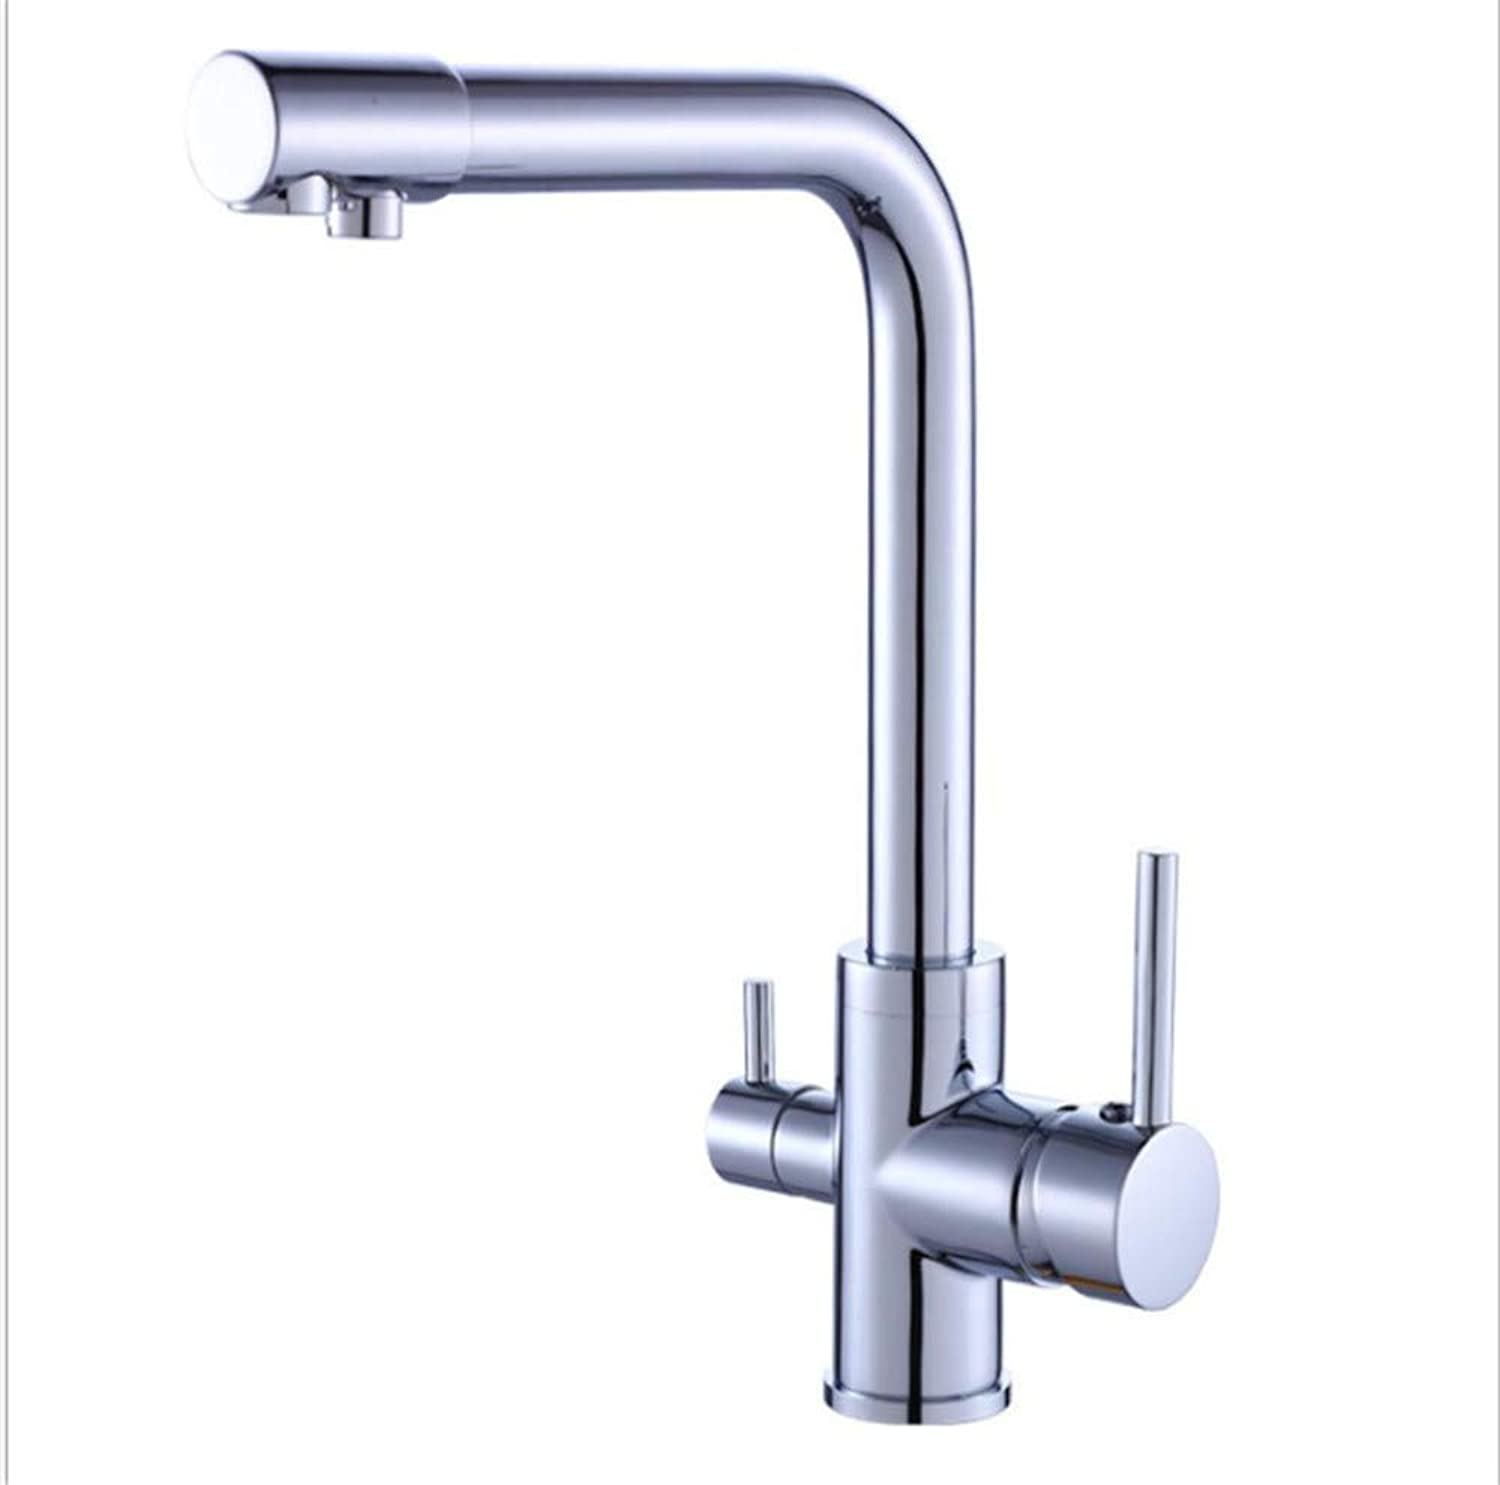 Water Tapdrinking Designer Archcopper Purified Water Kitchen Faucet Cool and Hot Mixed Water Single Kitchen Faucet Sanitary War